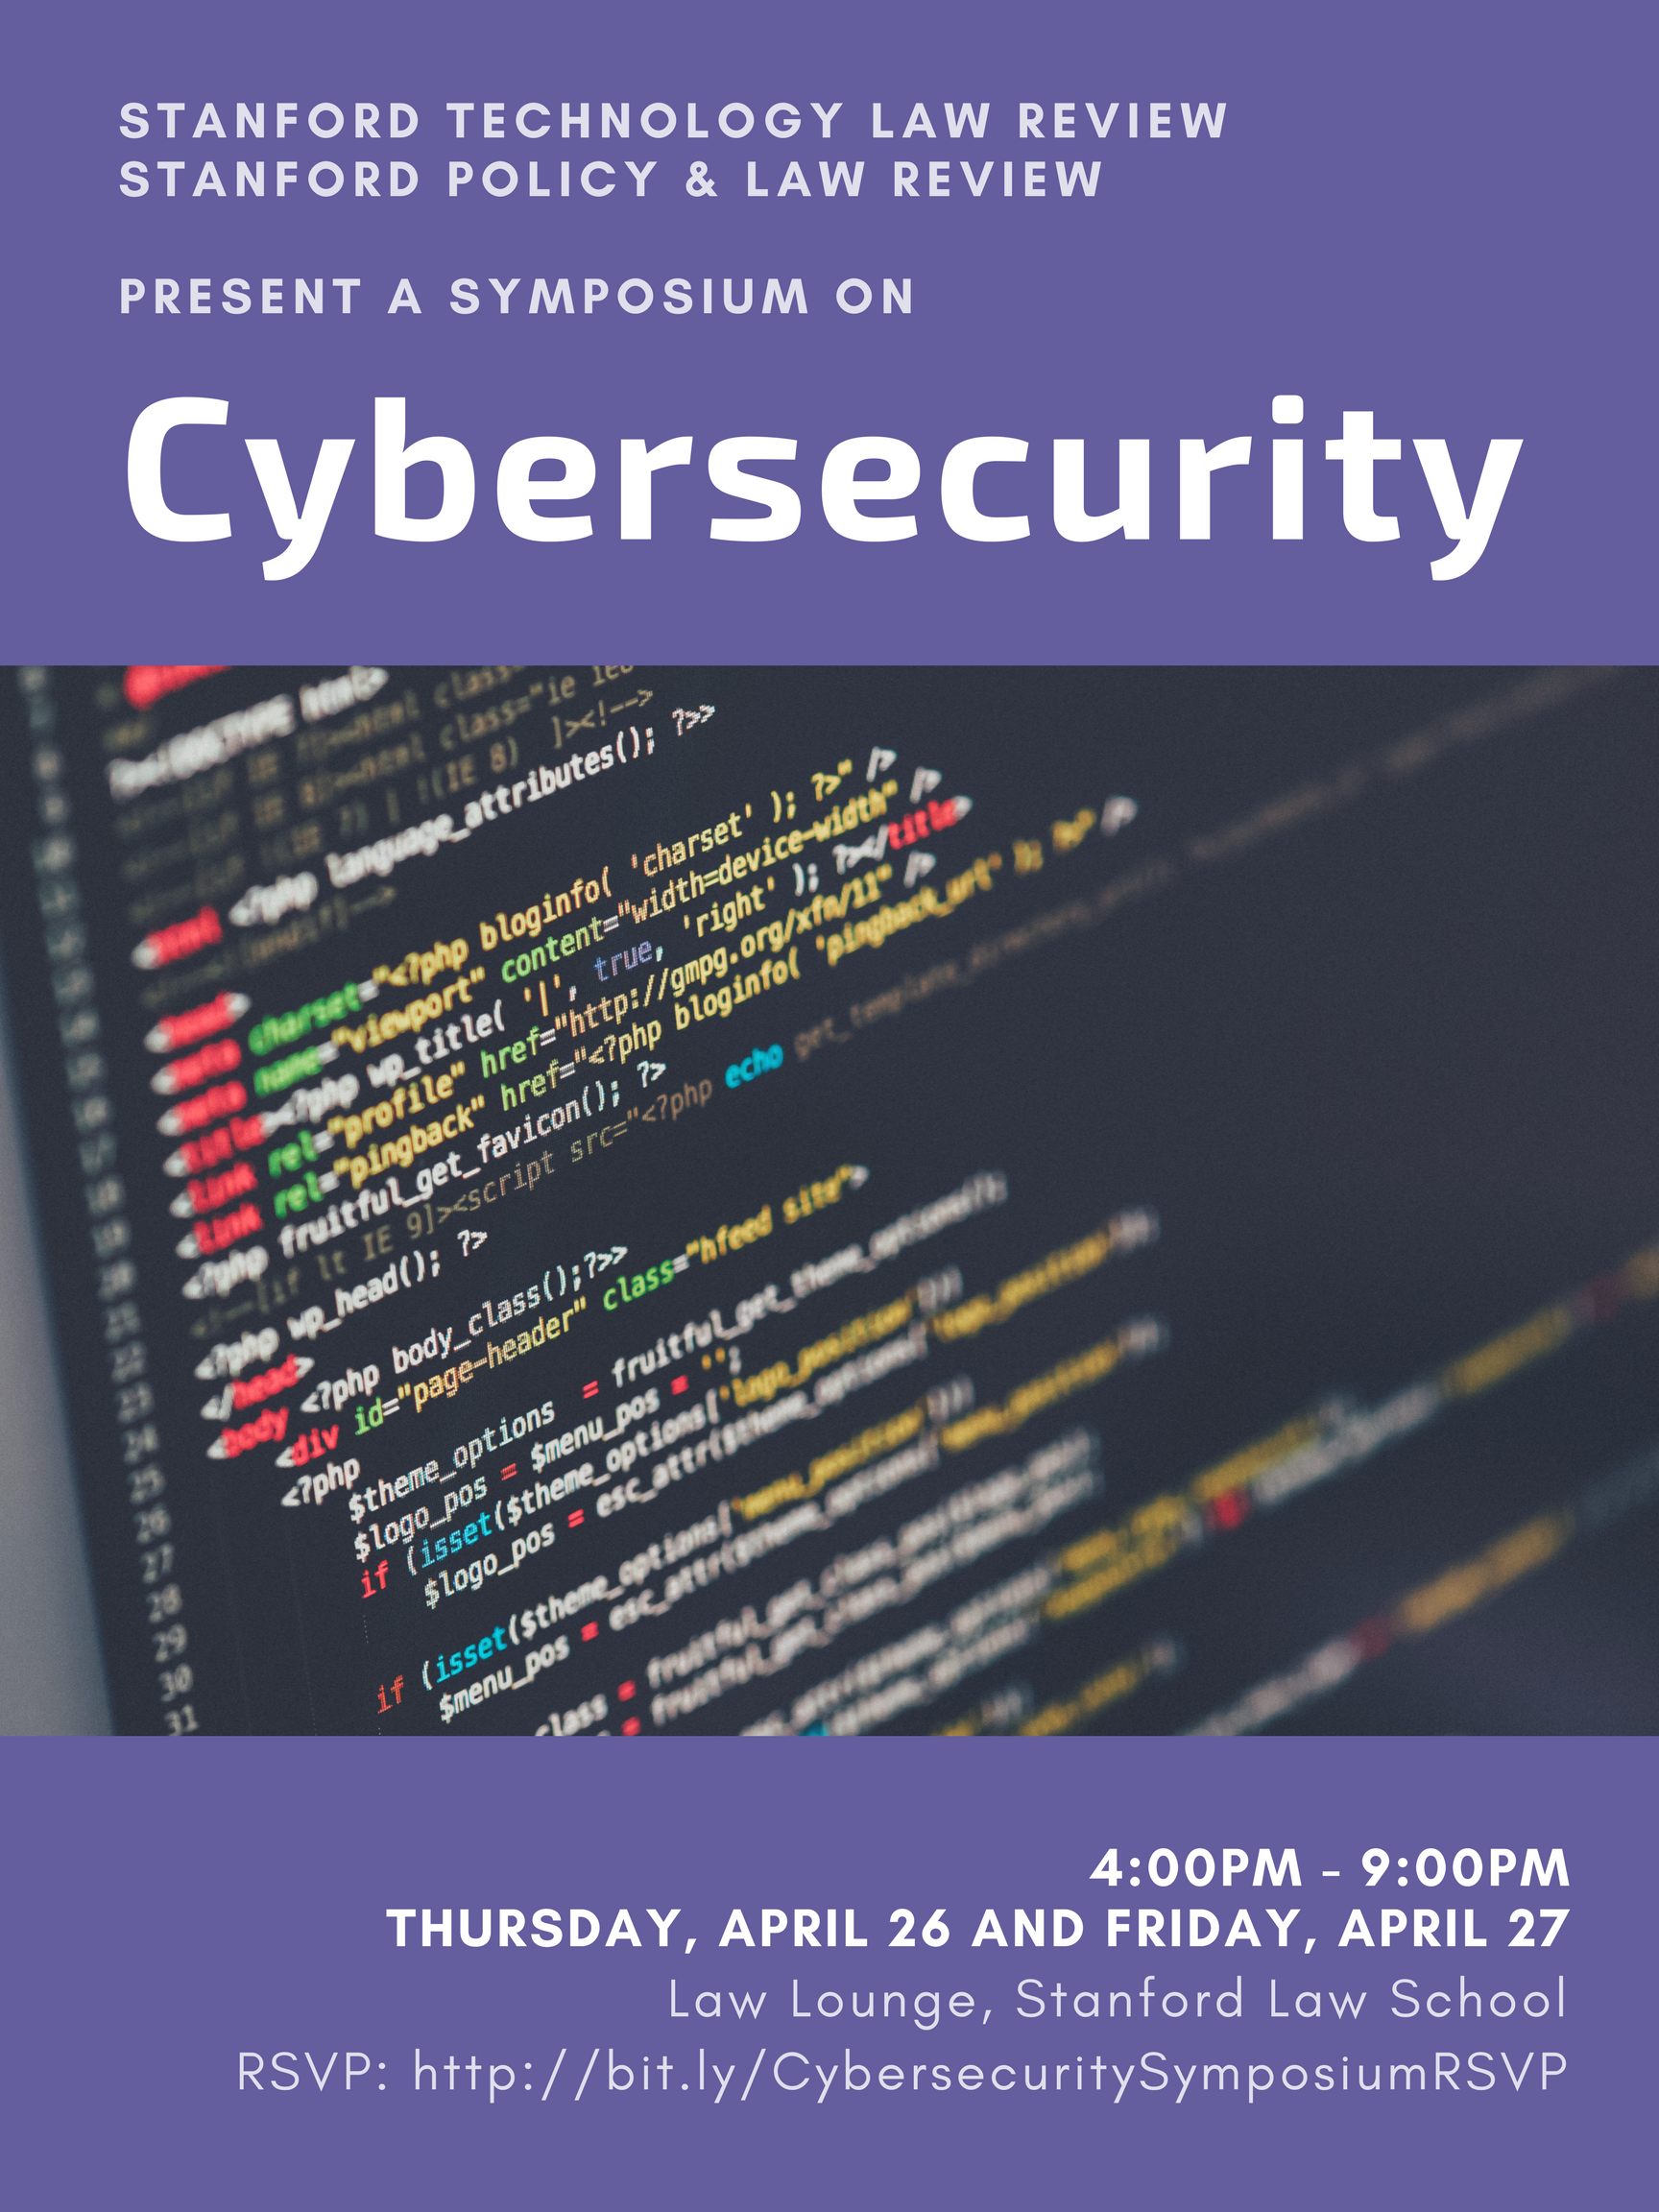 //bit.ly/CybersecuritySymposiumRSVP""